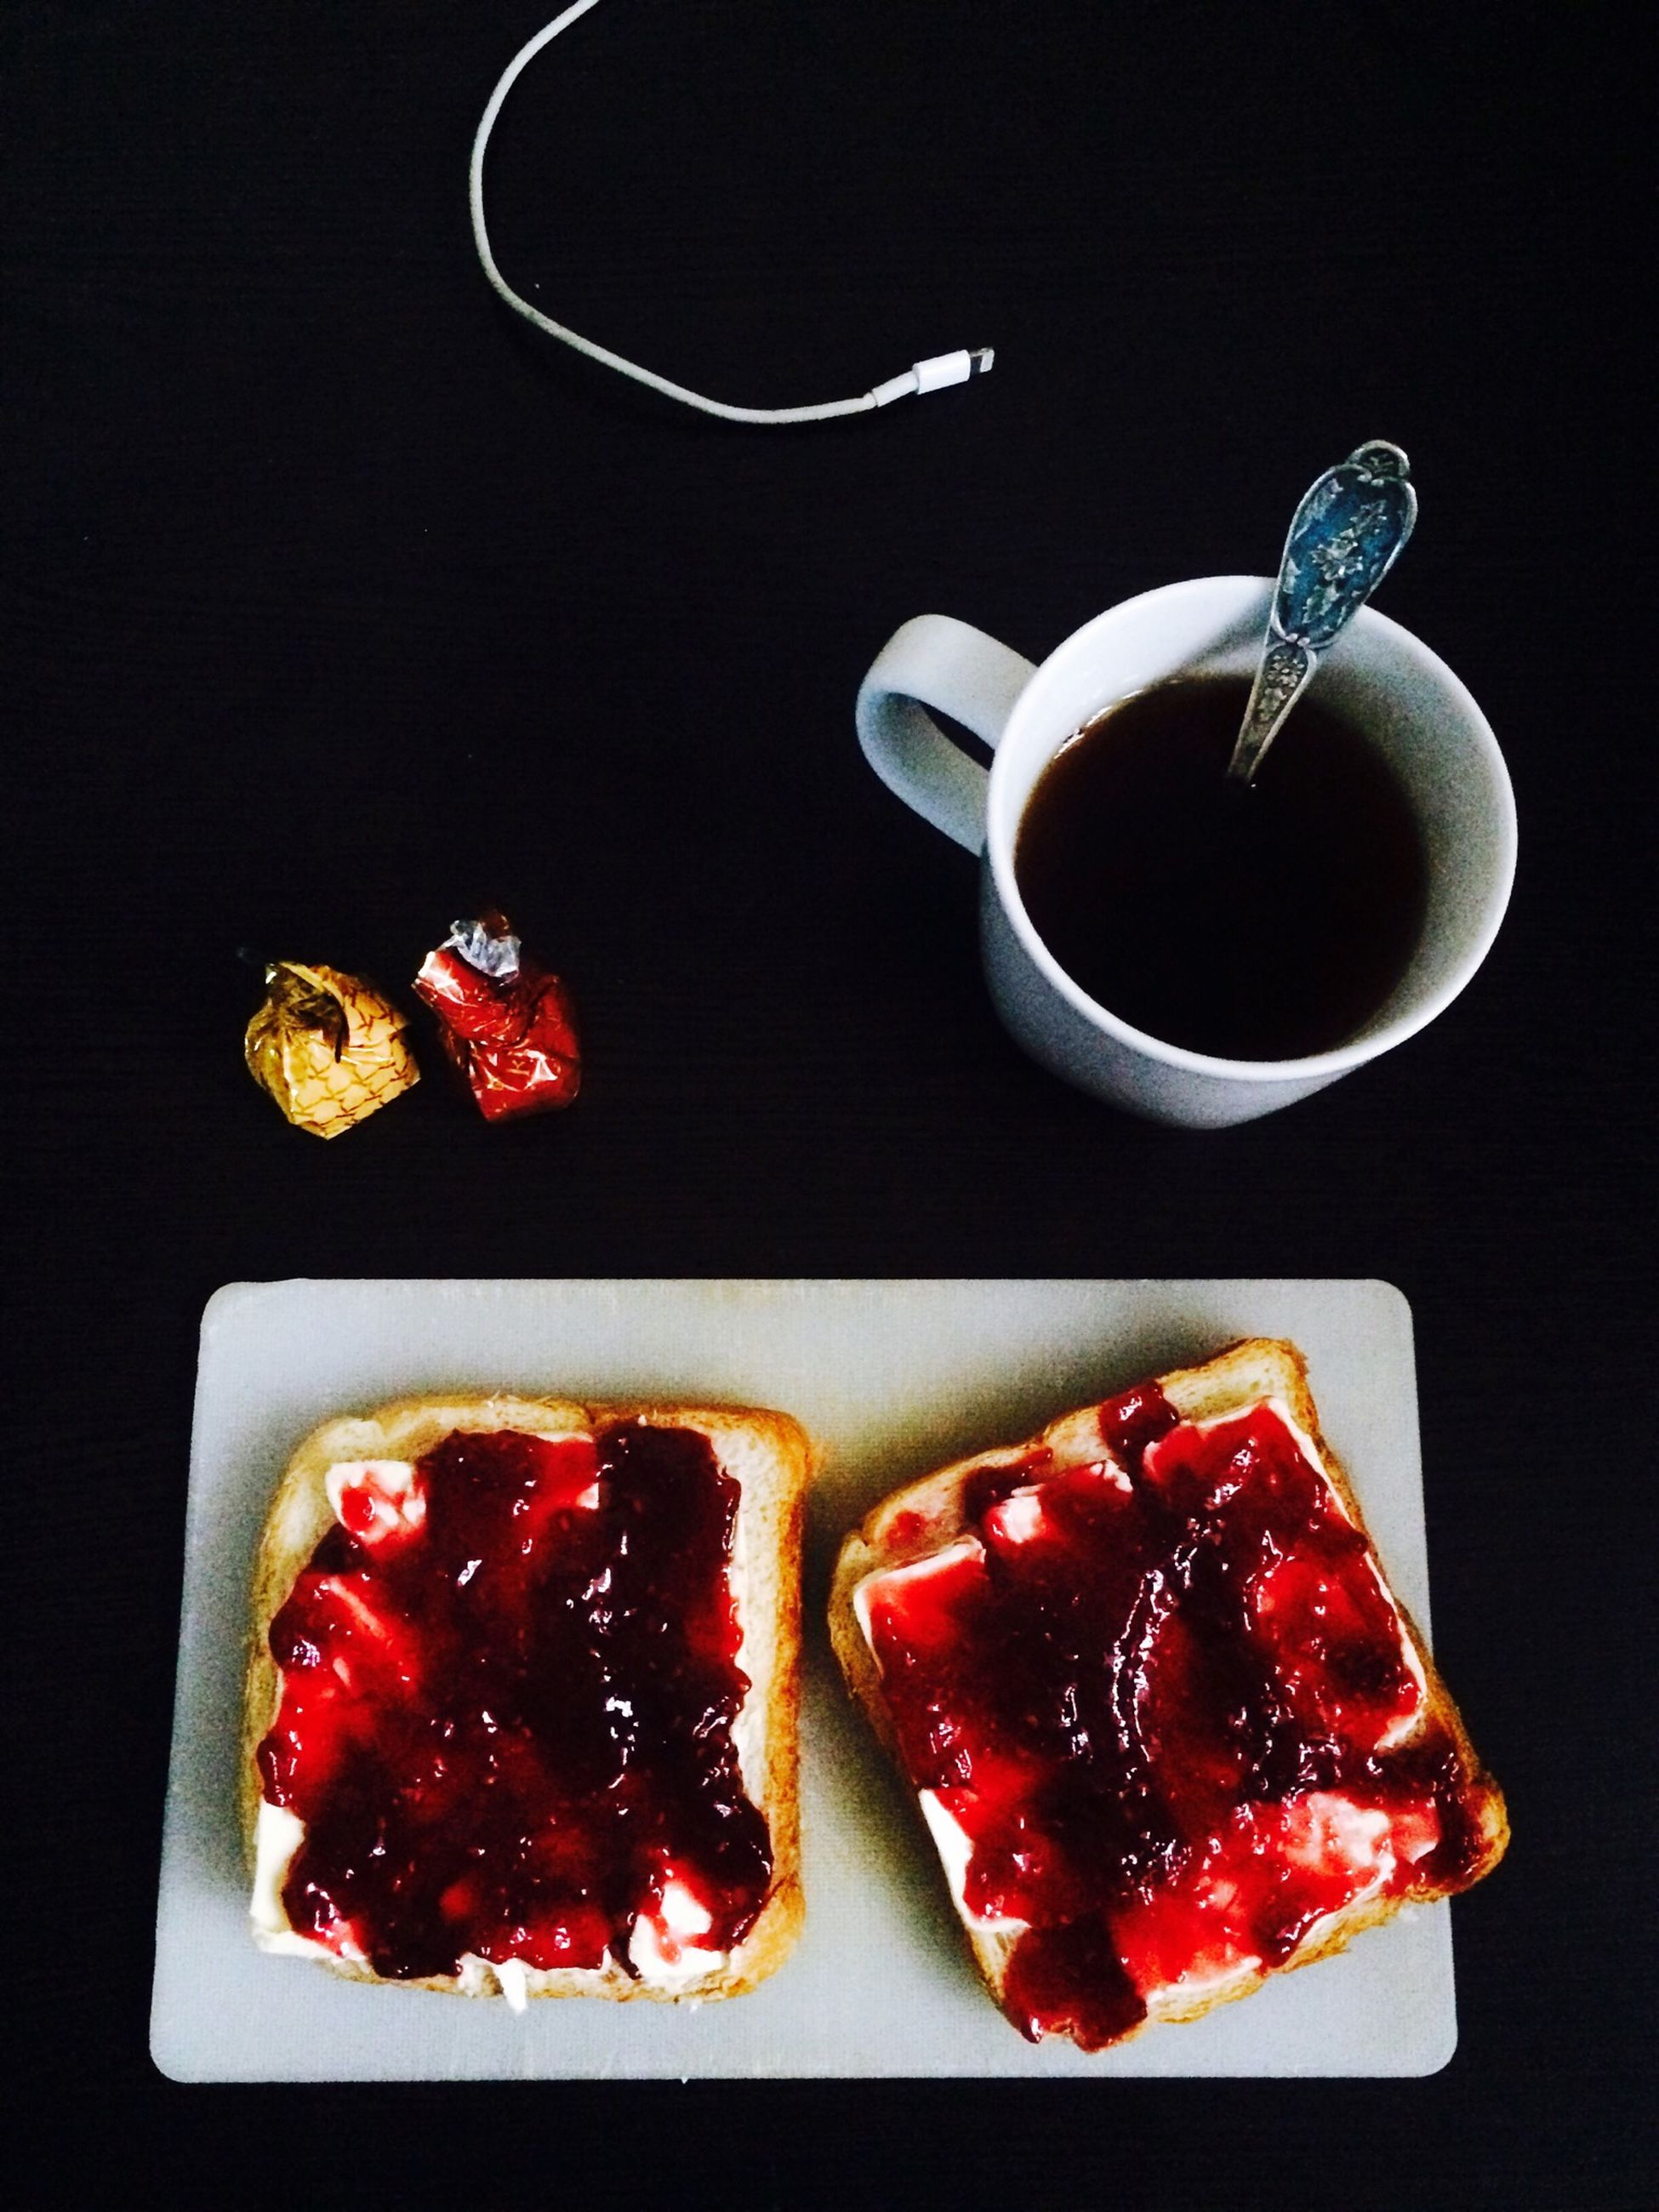 food and drink, food, freshness, still life, healthy eating, indoors, fruit, table, red, ready-to-eat, plate, strawberry, high angle view, studio shot, slice, directly above, breakfast, sweet food, indulgence, close-up